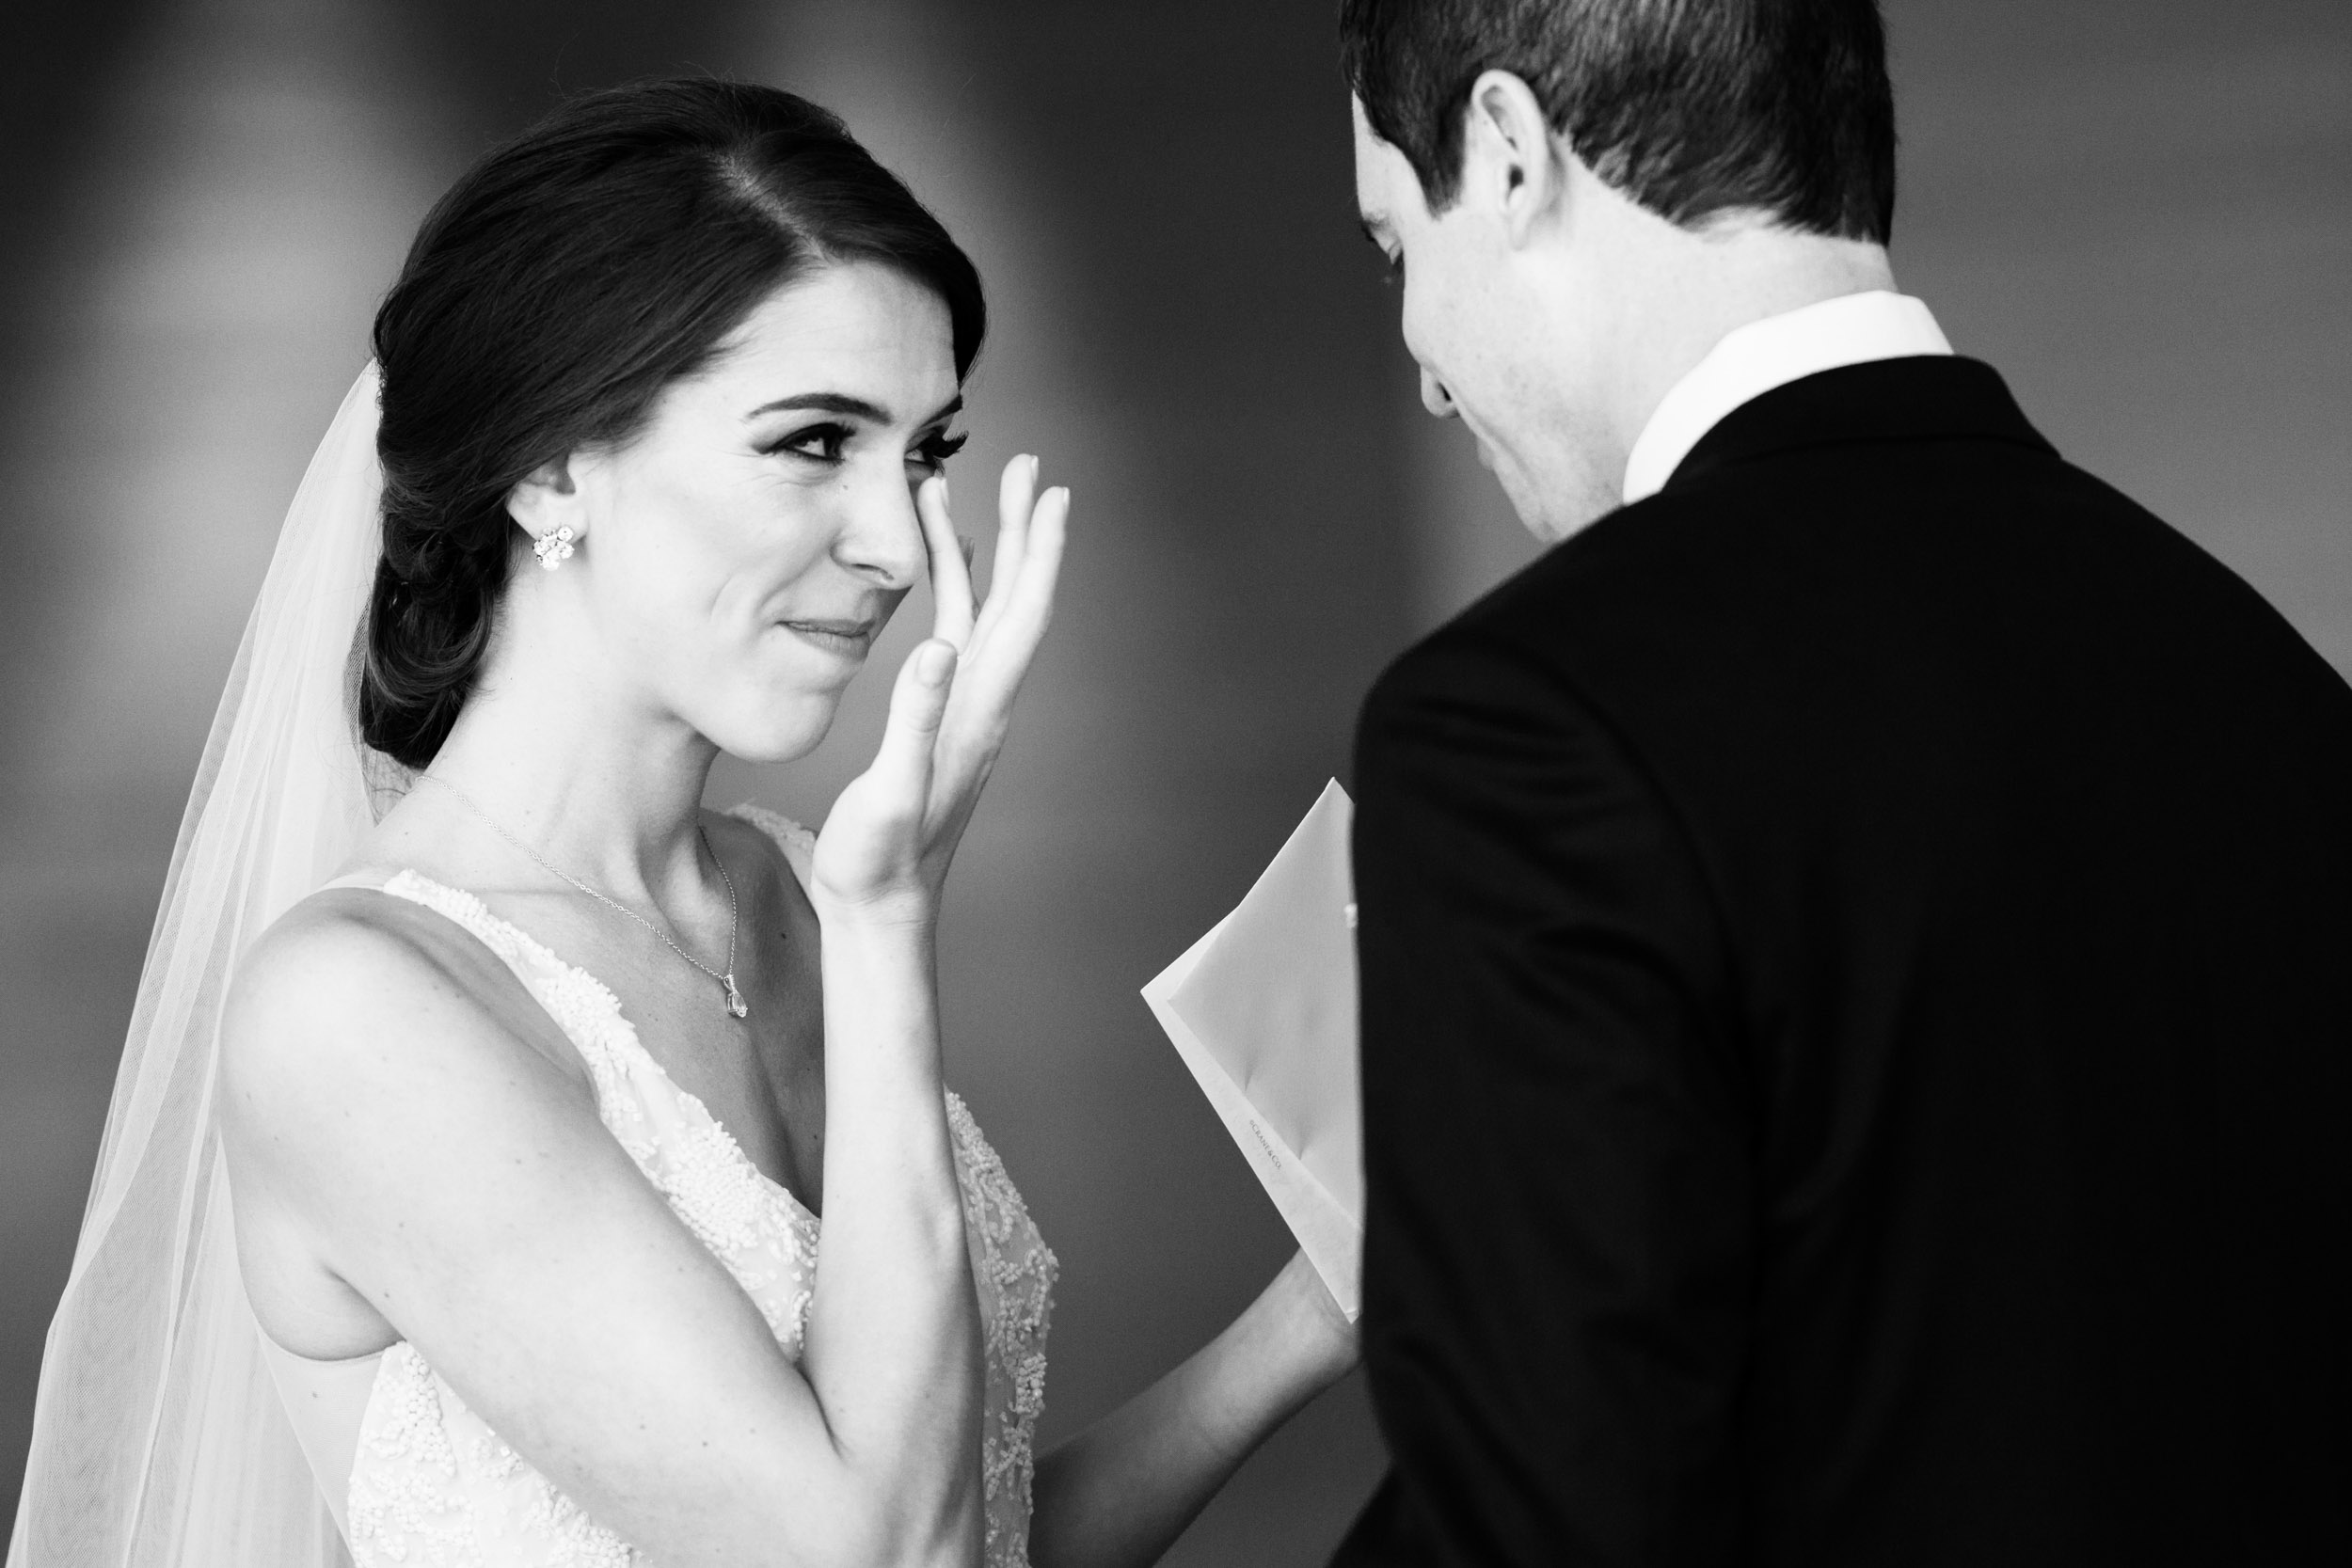 This is a beautiful photo of the bride wiping away tears during the first look at the Sheraton Grand in Chicago before a wedding at the Harold Washington Library.